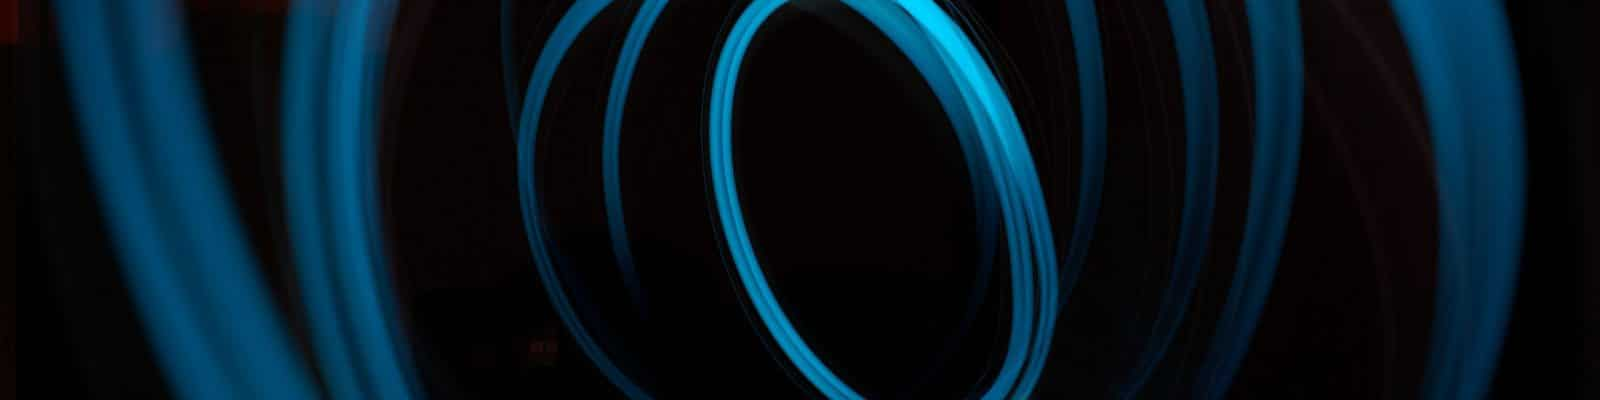 blue fiber optic swirls on black background - dedicated internet access cover image